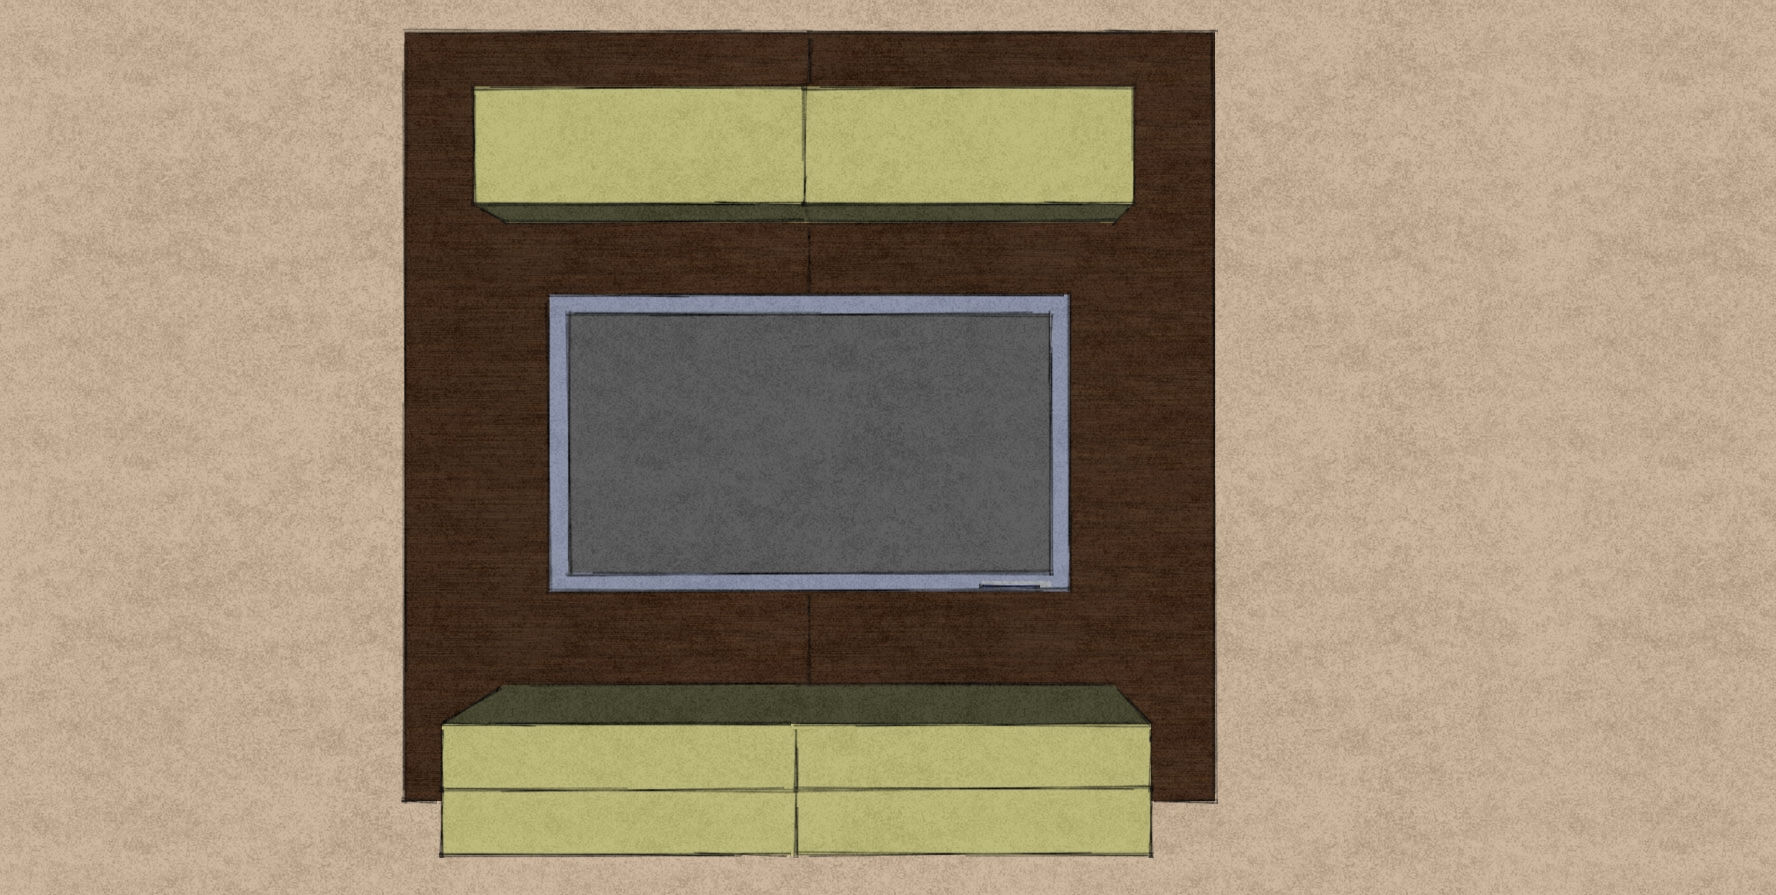 D20 media wall section for showhome Therm Oak back panels and lime green drawers and upper cabinets.jpg